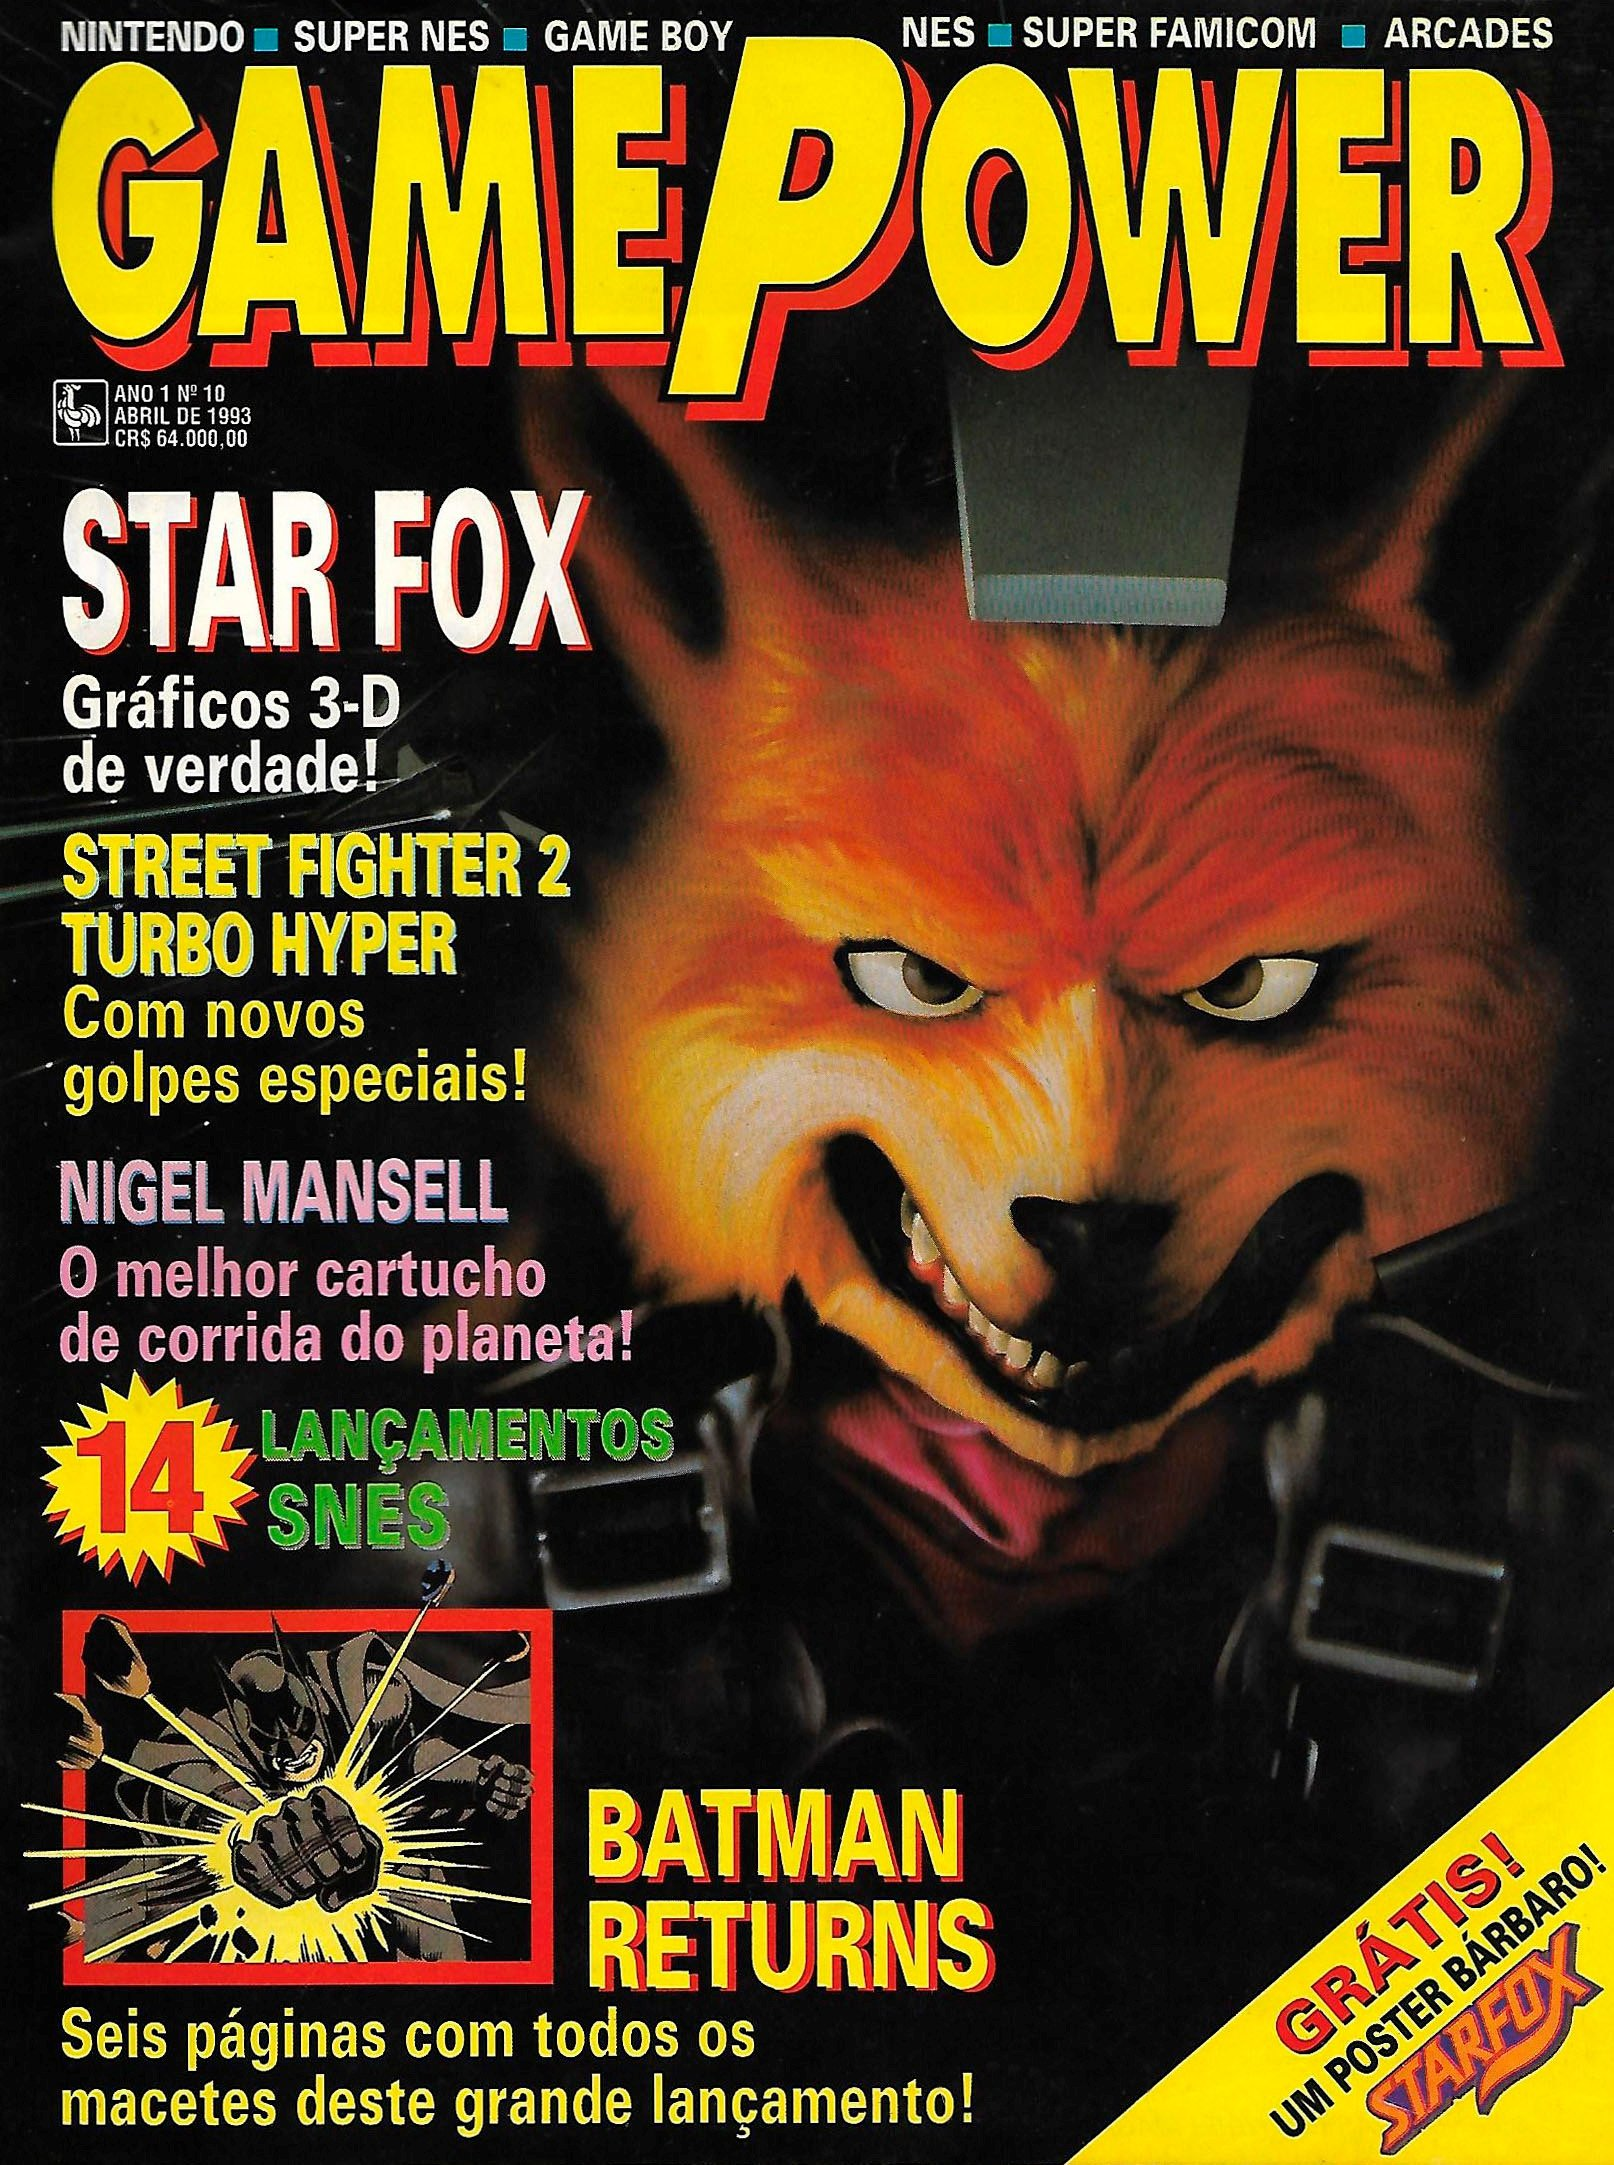 GamePower Issue 010 (April 1993)